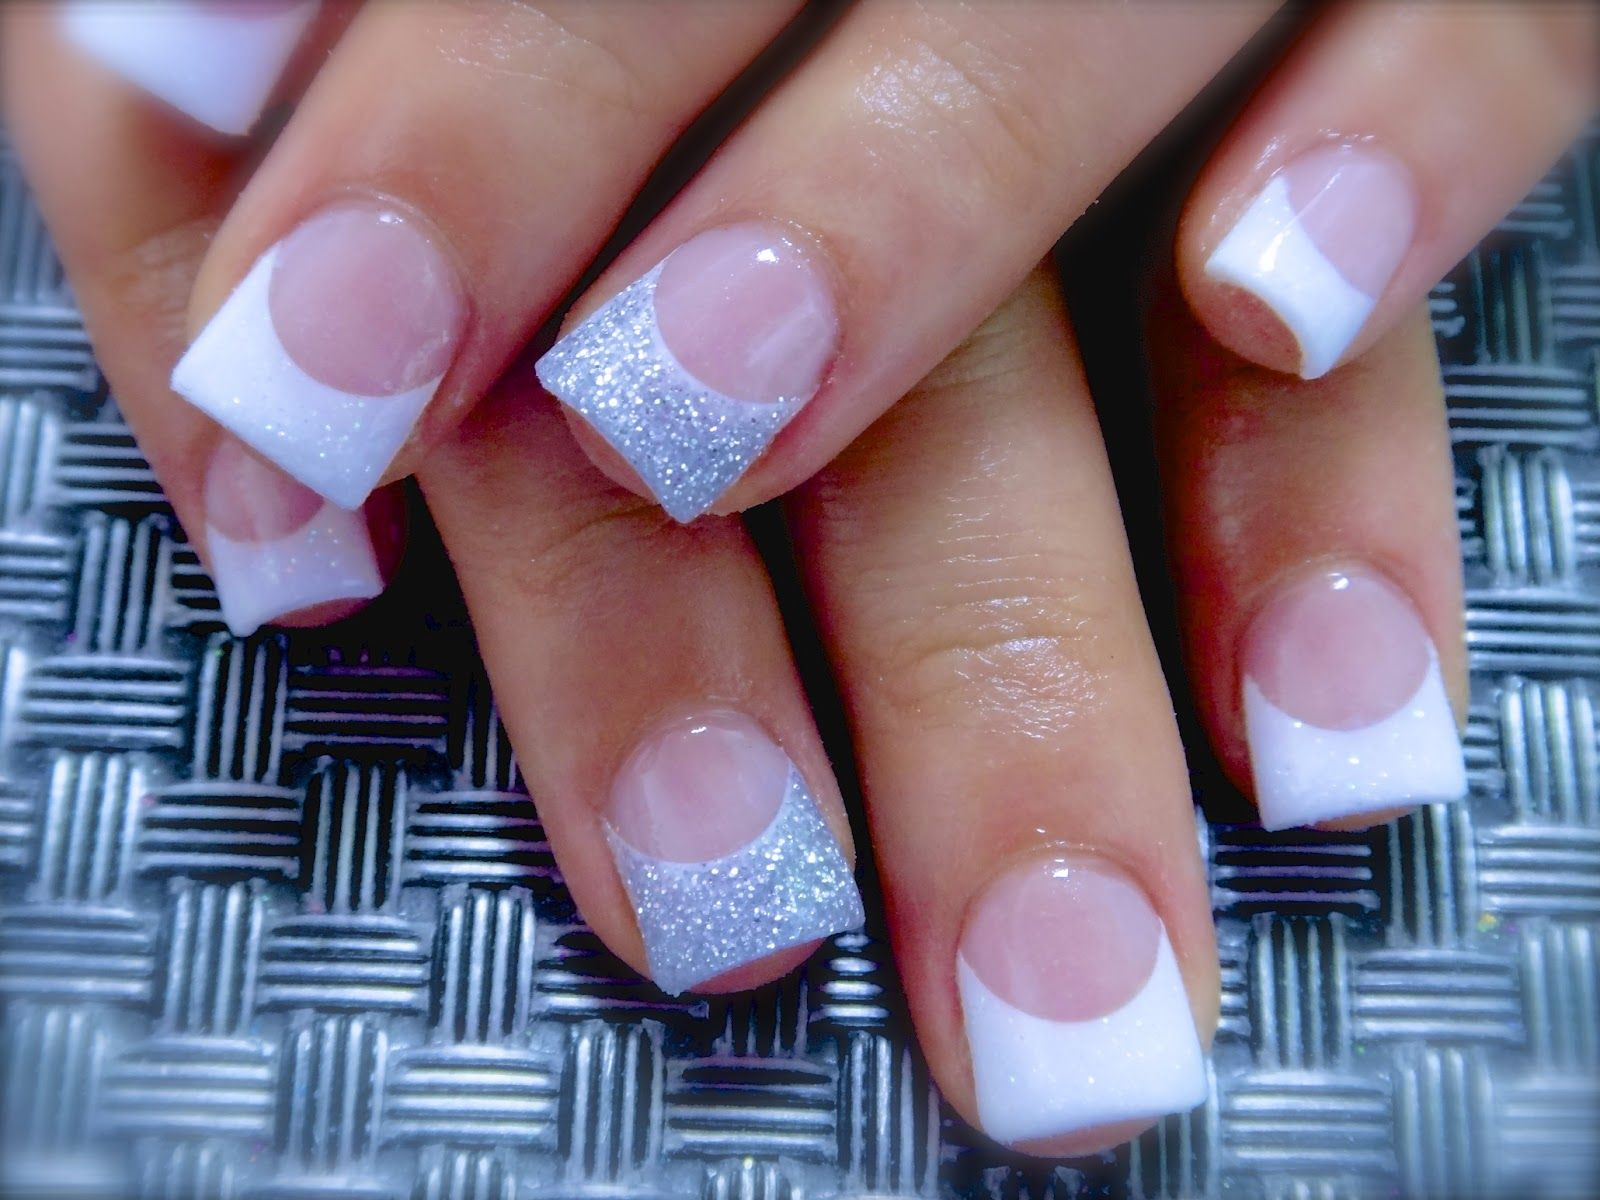 Pattern nail art designs fancy nail art for prom simple nail art lines - Simple And Elegant Acrylic Nail Art Baby Flares Pink And White French